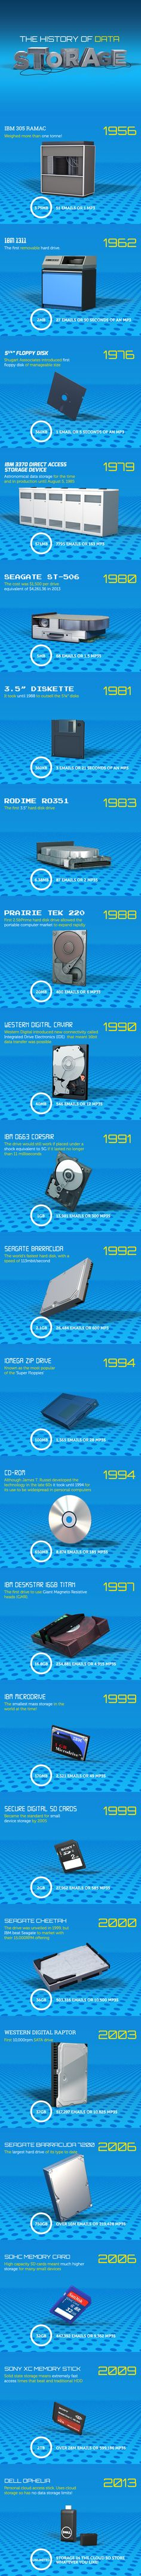 """A history of data storage [interactice infographic]. From the 1956 one-ton wonder that stored a paltry 3.75 MB to today's sky's-the-limit cloud storage - take a """"scroll"""" down memory lane and see the history of data storage with this interactive infographic: http://techpageone.dell.com/technology/memory-serves-history-data-storage/"""